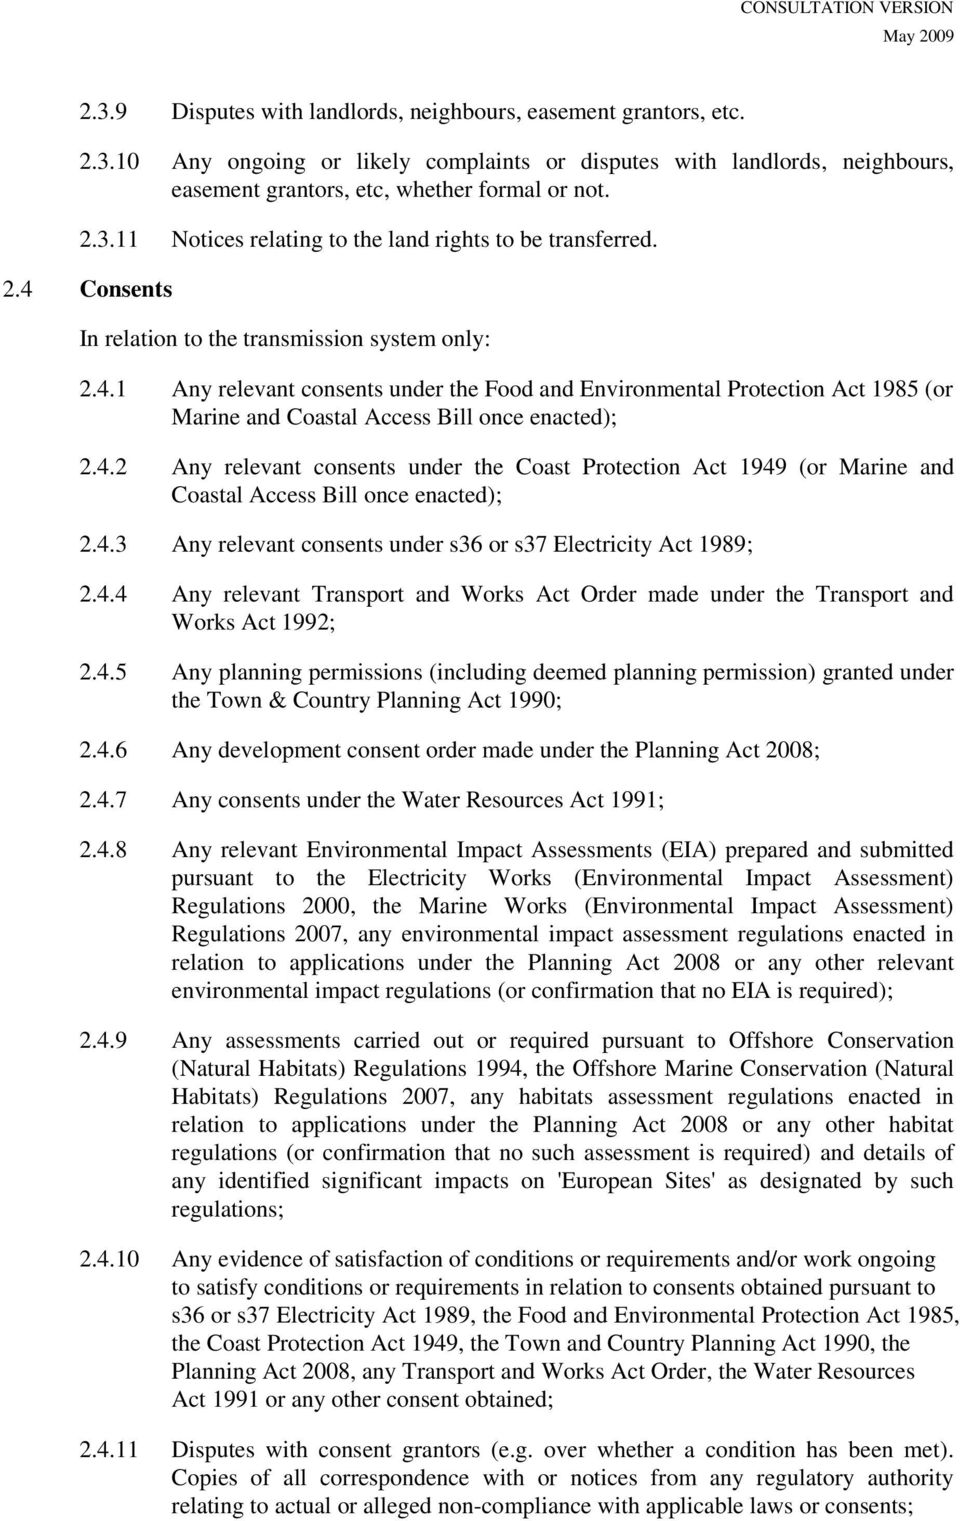 4.3 Any relevant consents under s36 or s37 Electricity Act 1989; 2.4.4 Any relevant Transport and Works Act Order made under the Transport and Works Act 1992; 2.4.5 Any planning permissions (including deemed planning permission) granted under the Town & Country Planning Act 1990; 2.